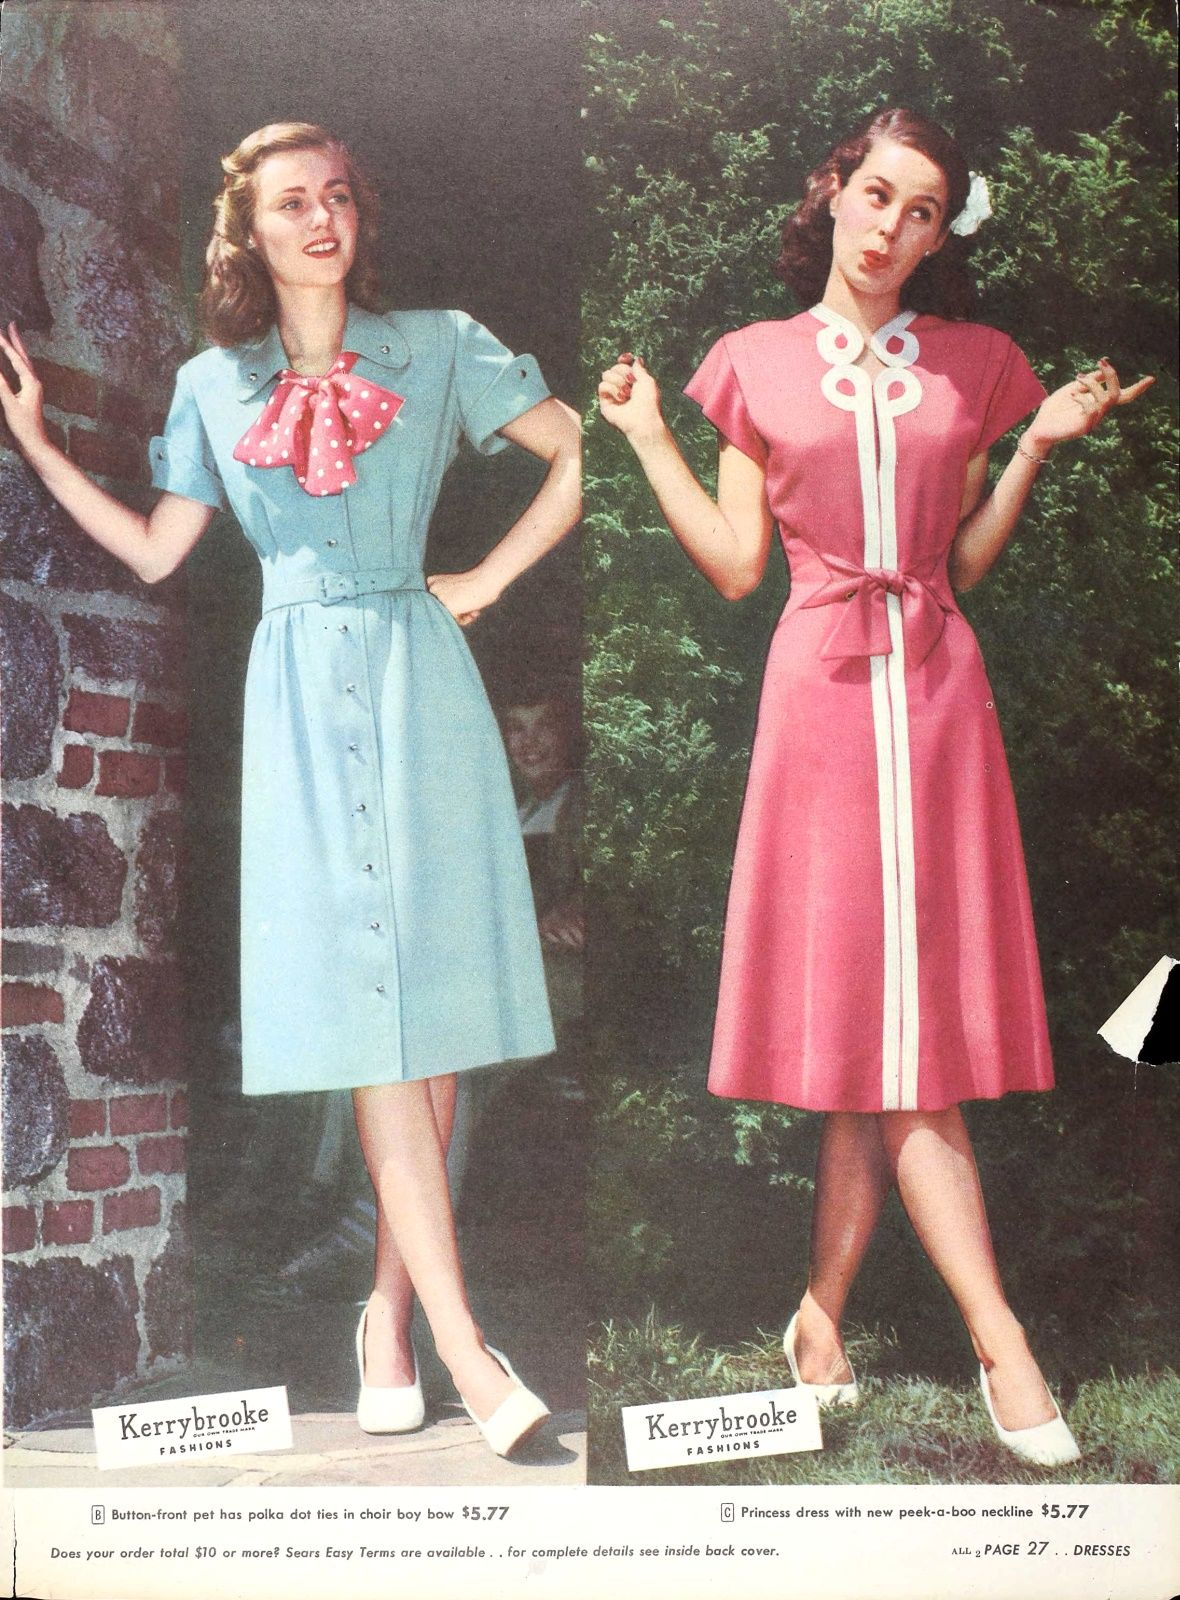 The Real And The Inspired By 1940s Fashion: Kerrybrooke Fashions From The Mid 1940's